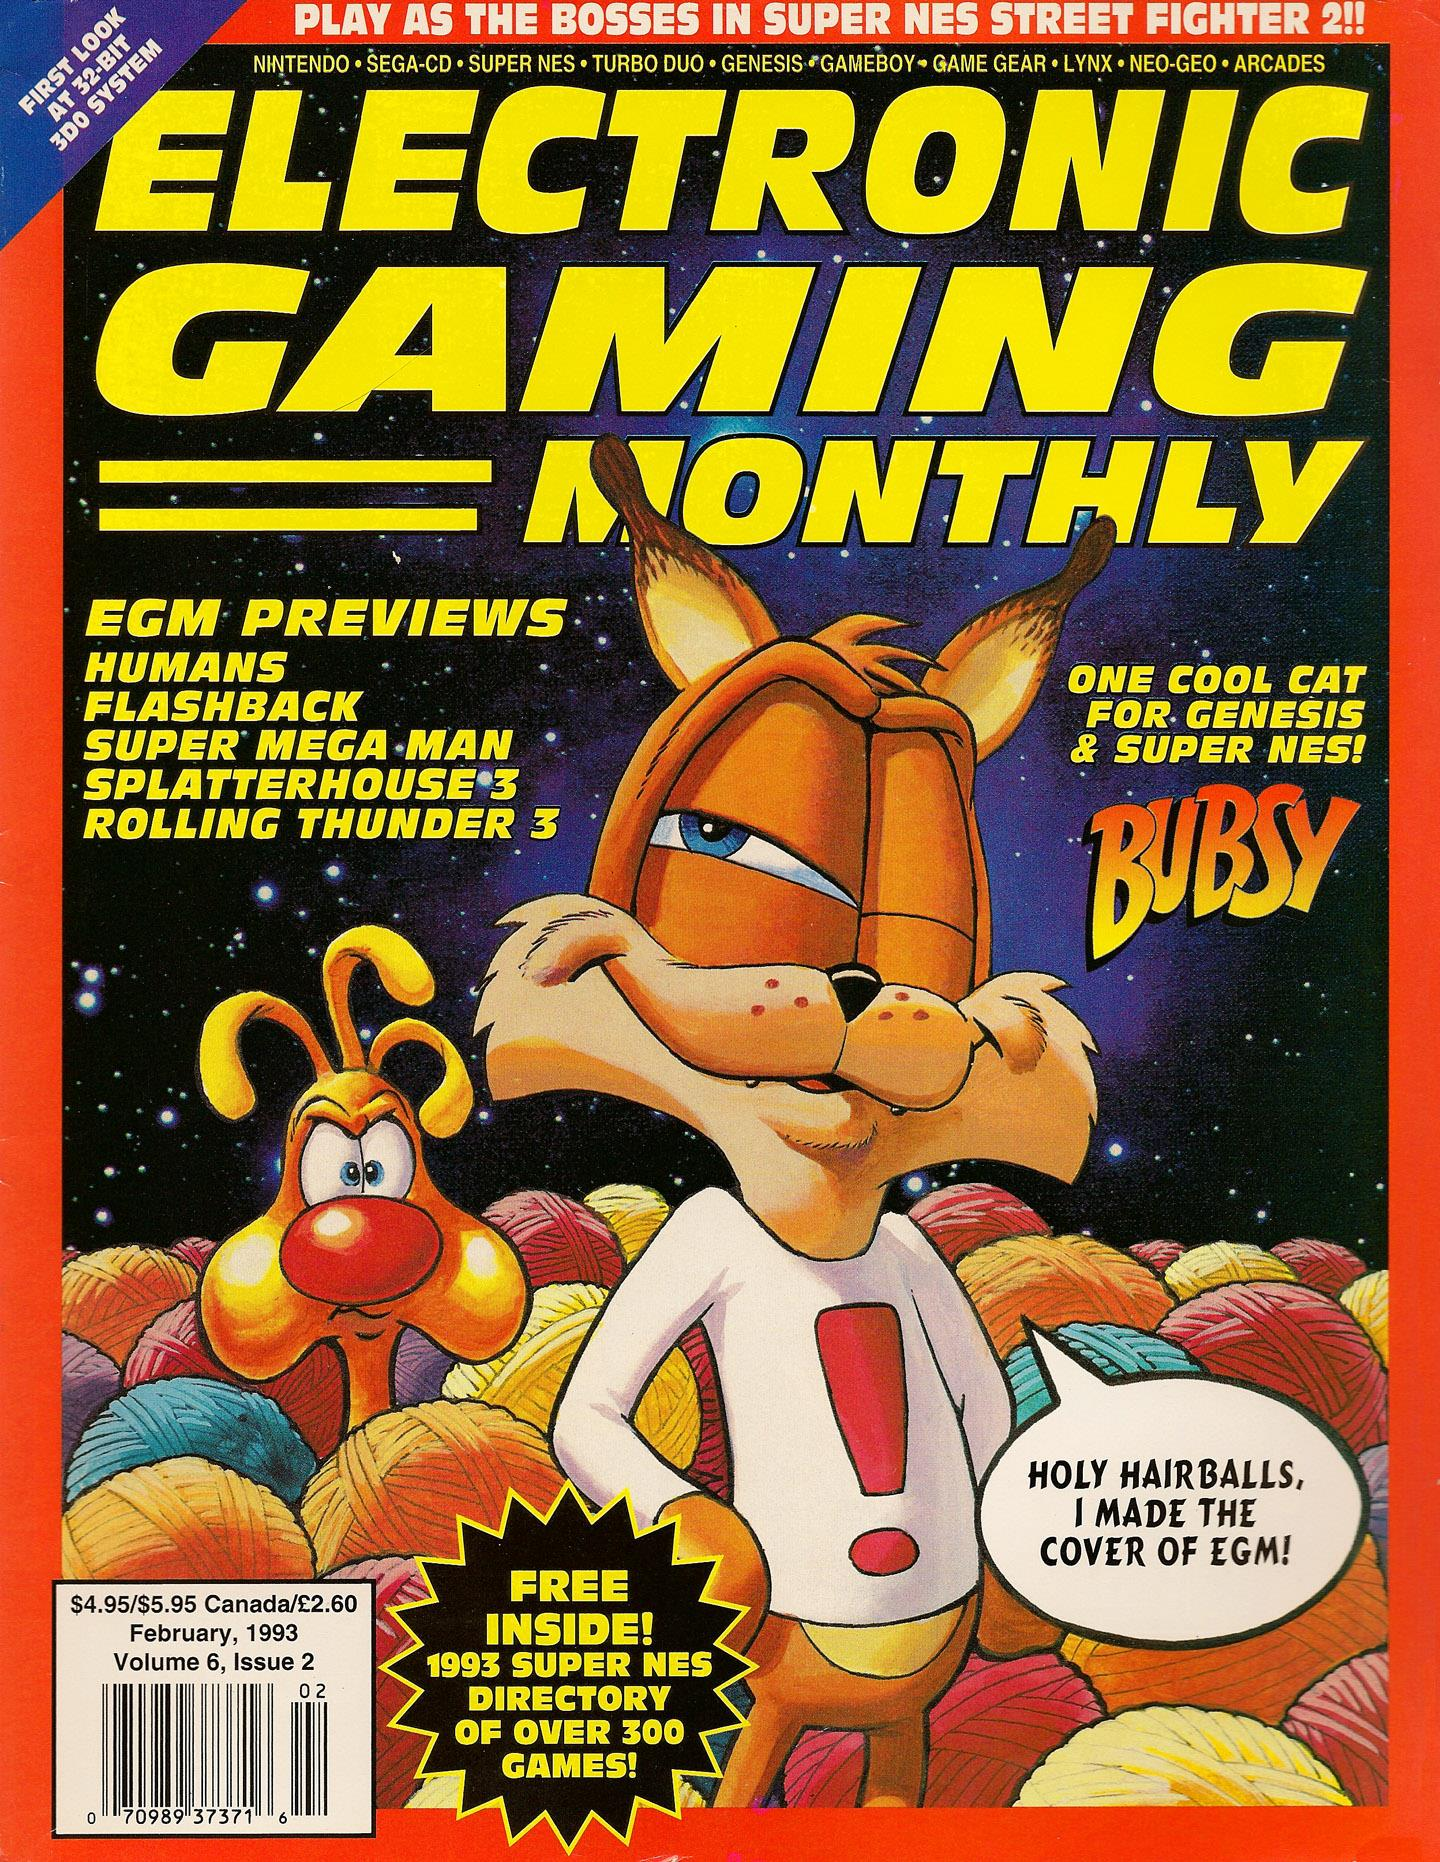 One of my favorite EGM issues ever!